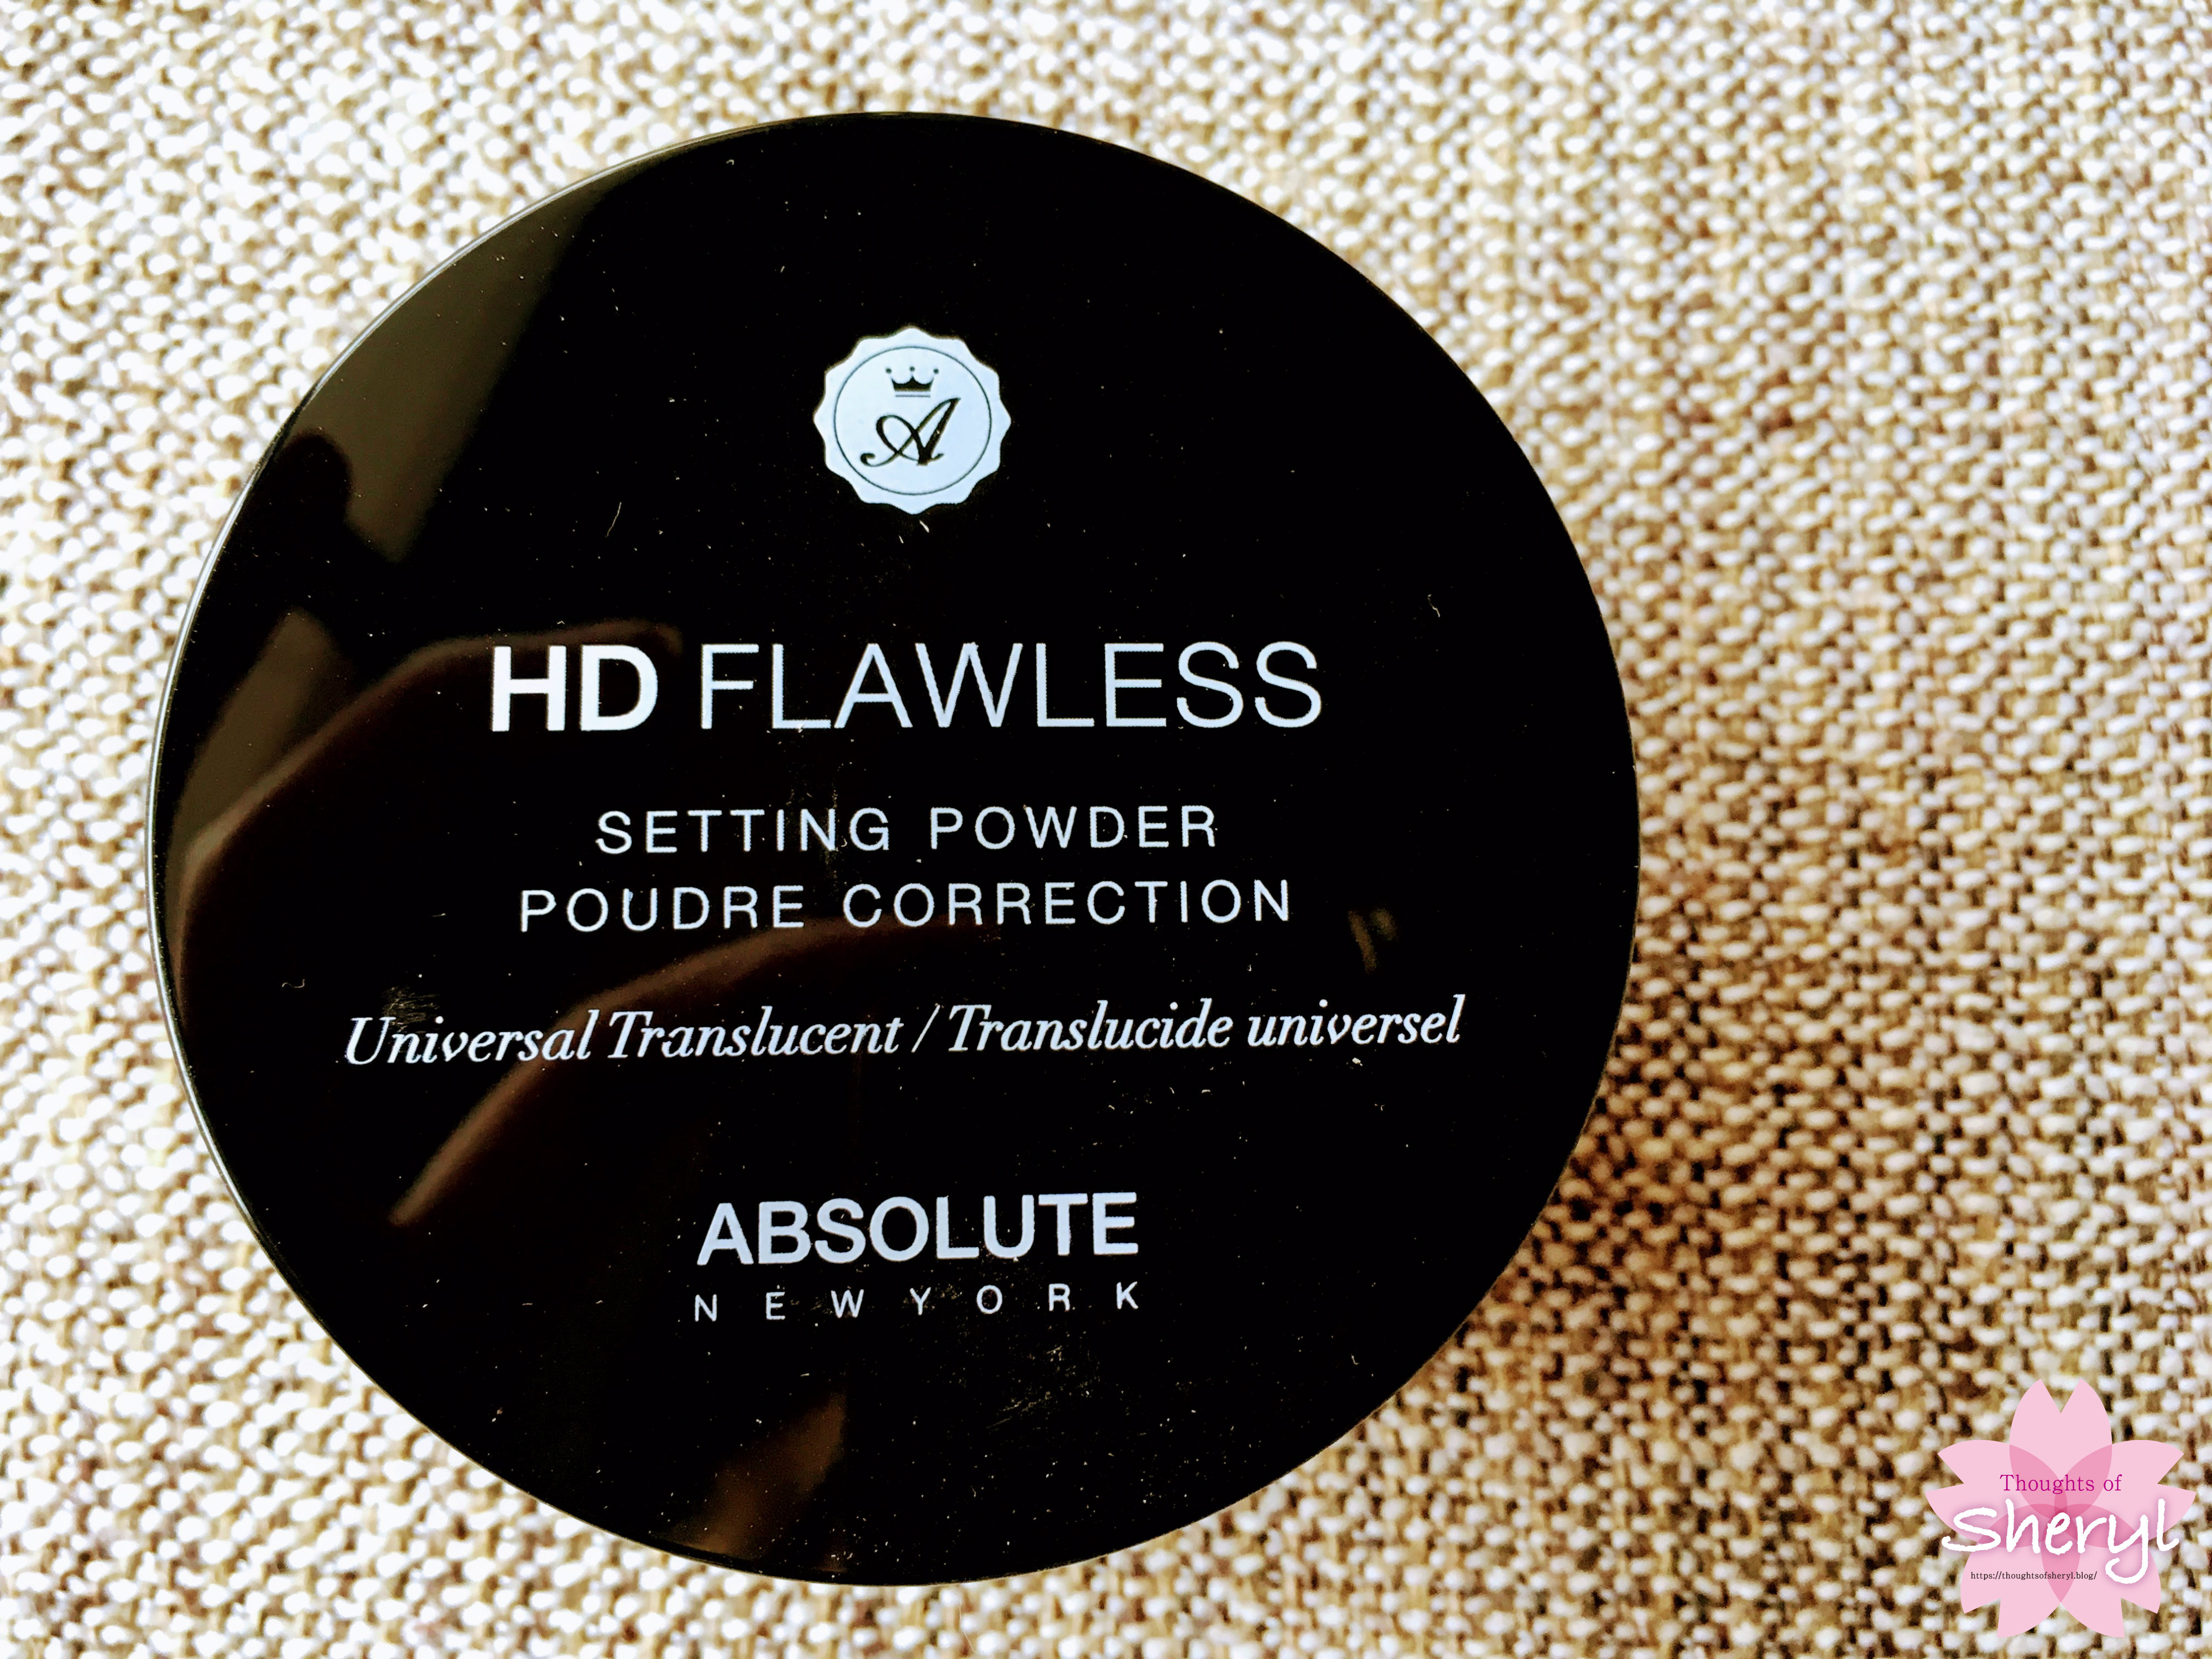 absolute new york hd flawless setting powder review